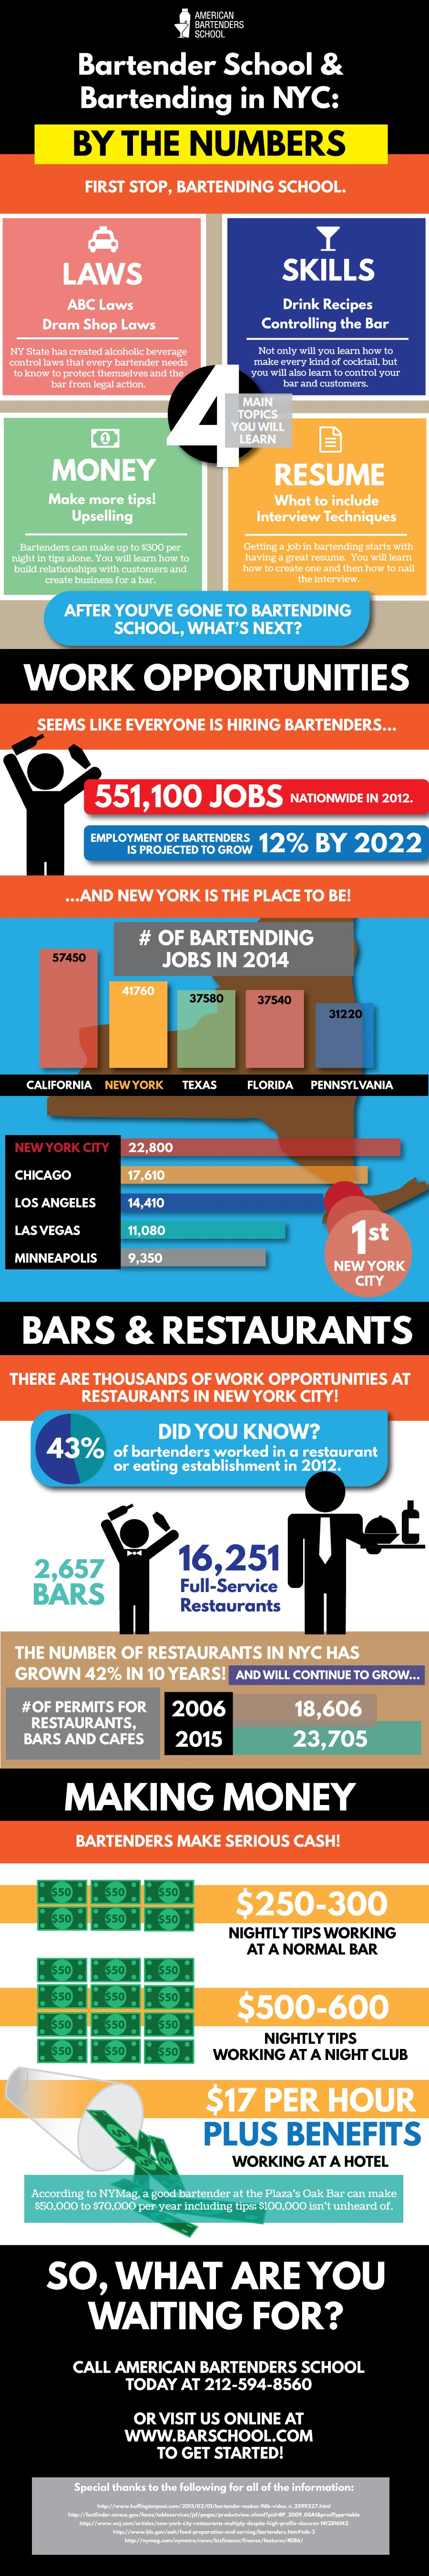 Bartender-school-and-bartending-in-nyc-by-the-numbers